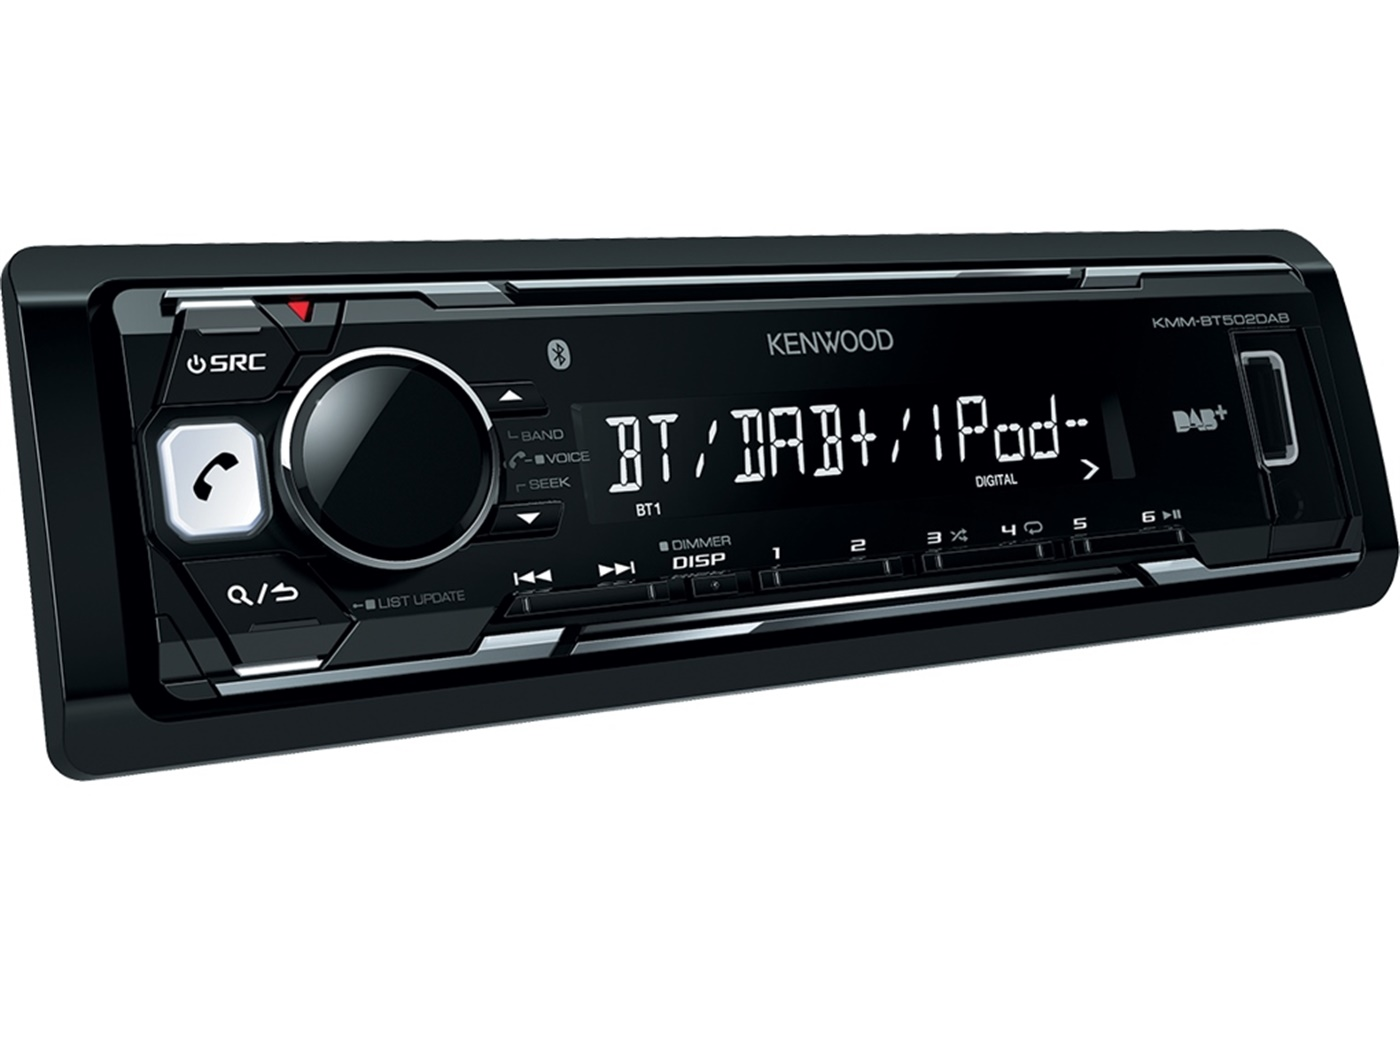 Autoradio Kenwood KMM-BT502DAB